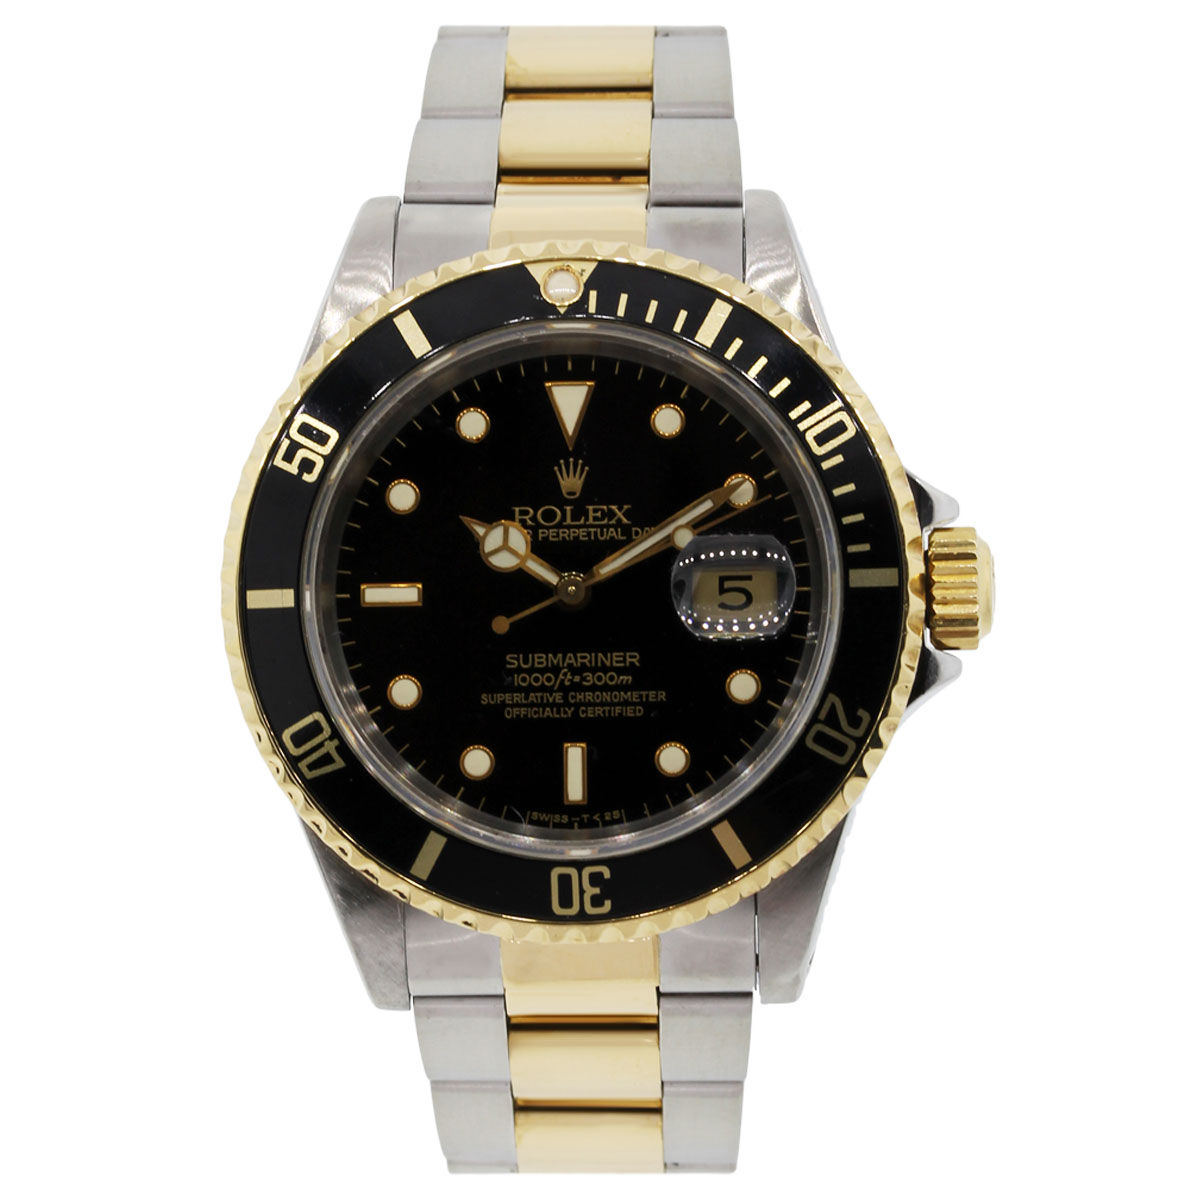 rolex submariner 16613 black dial two tone watch. Black Bedroom Furniture Sets. Home Design Ideas